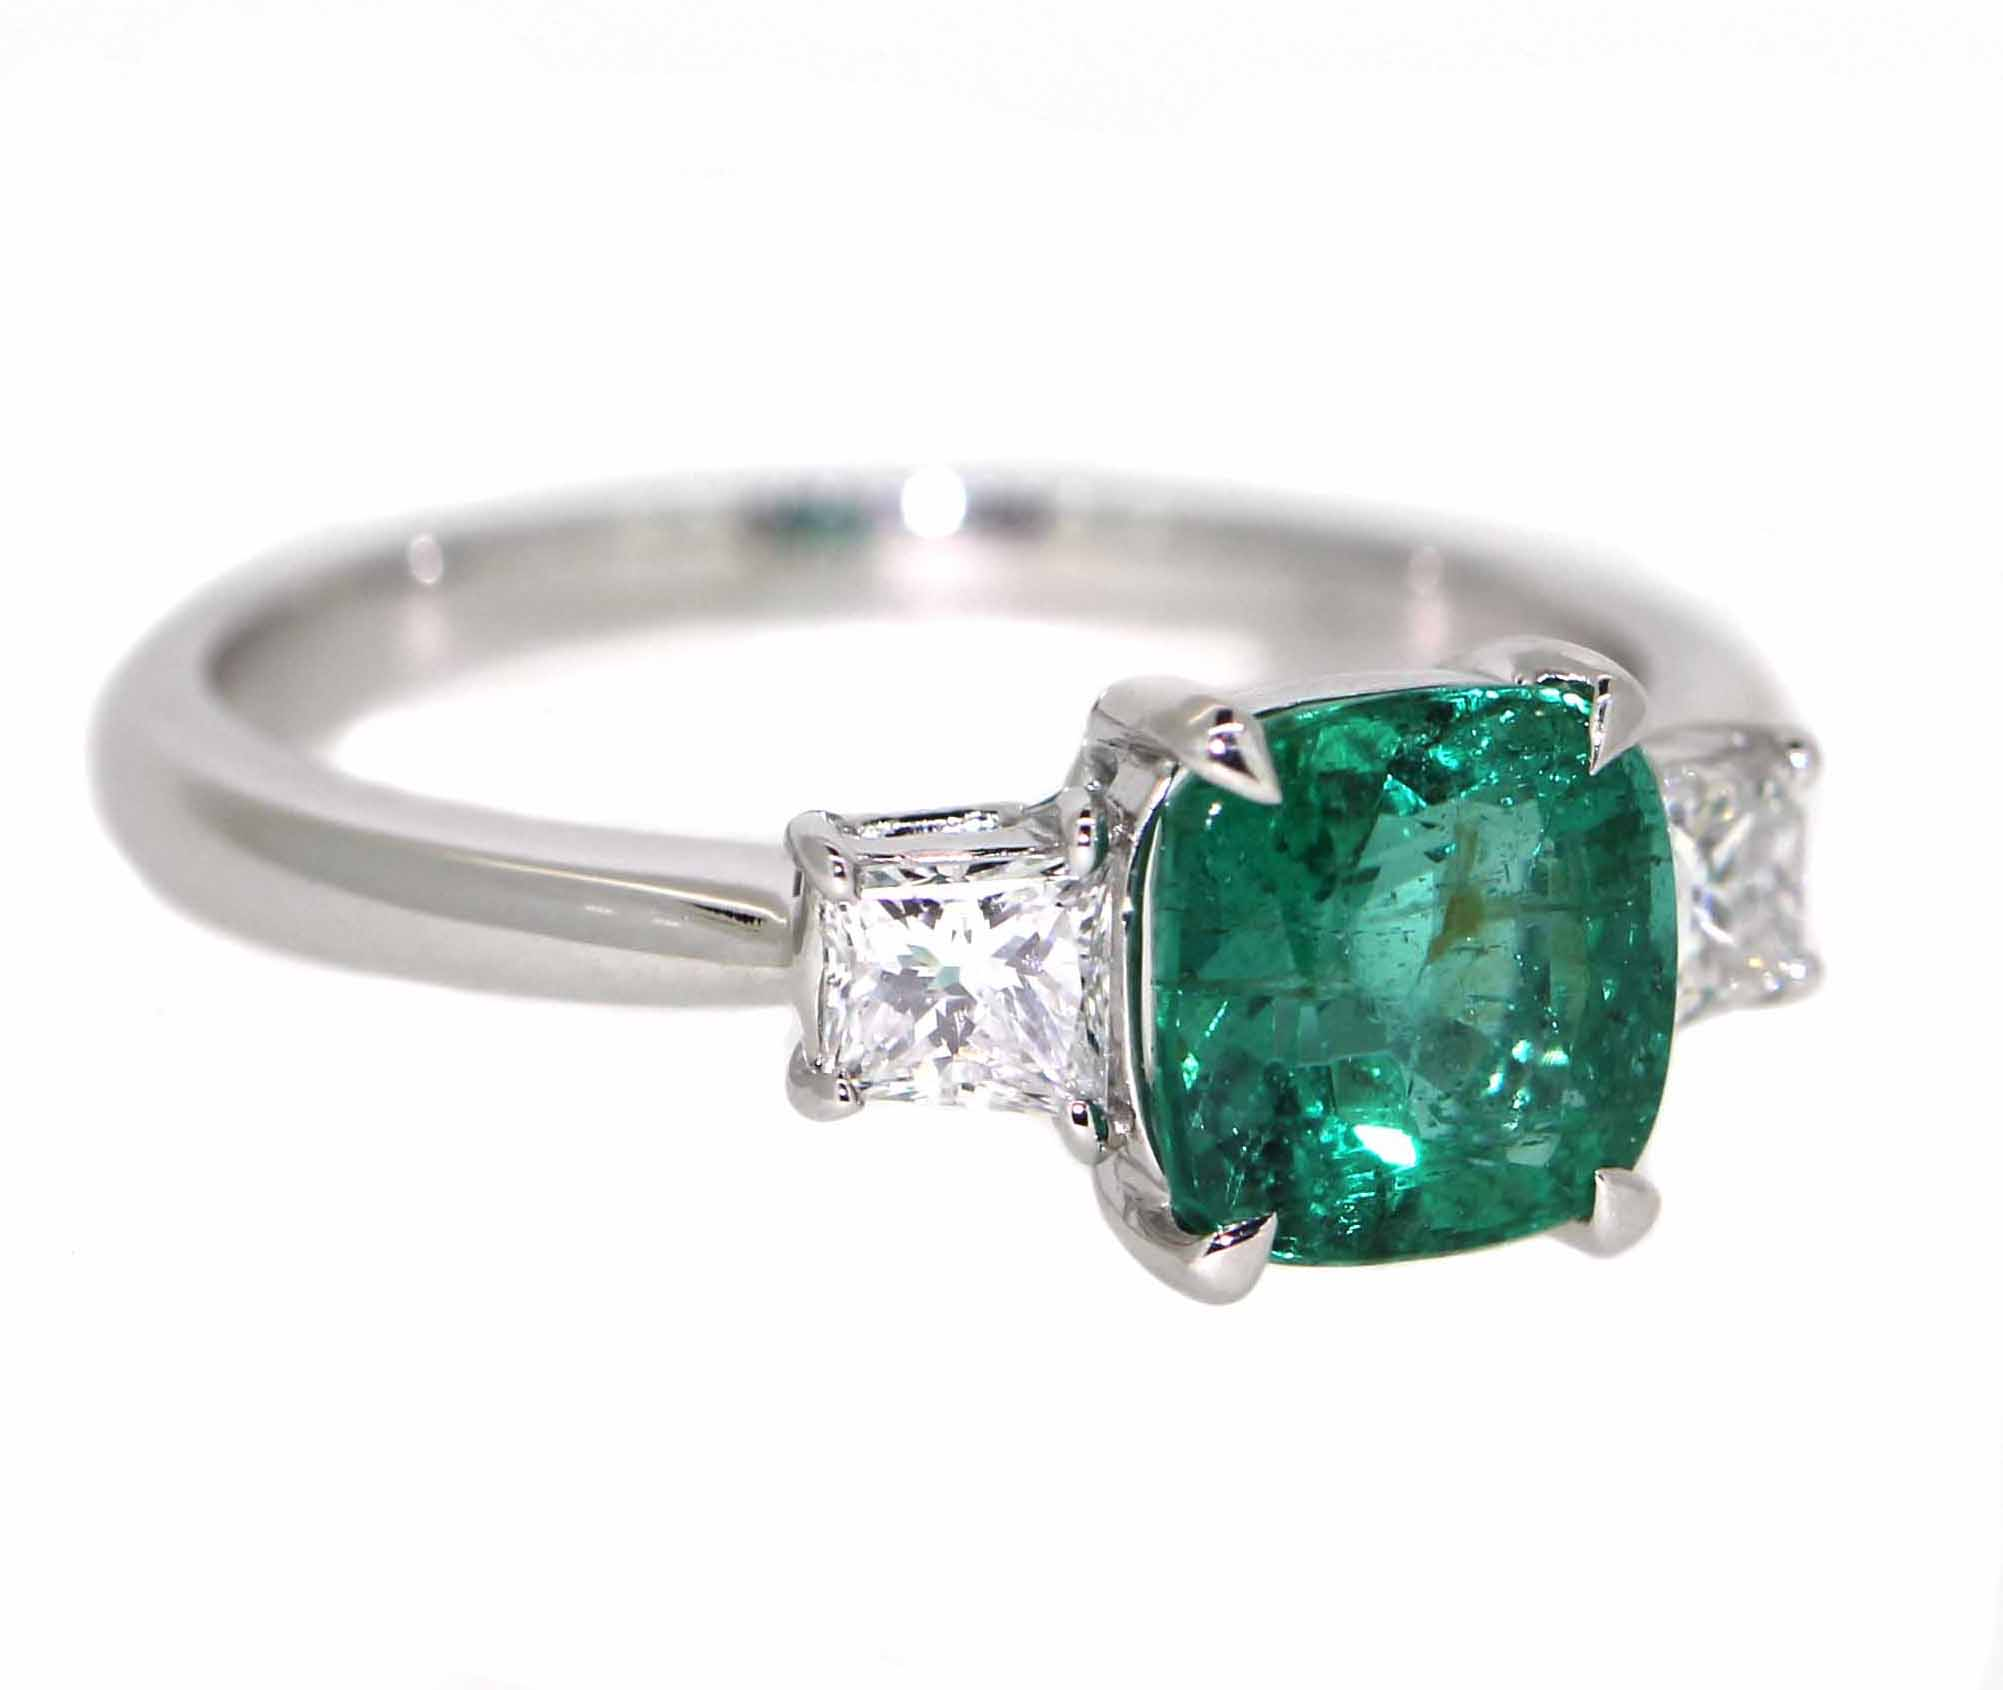 18ct White Gold, 1.45ct natural Emerald & .45ct of Diamonds.